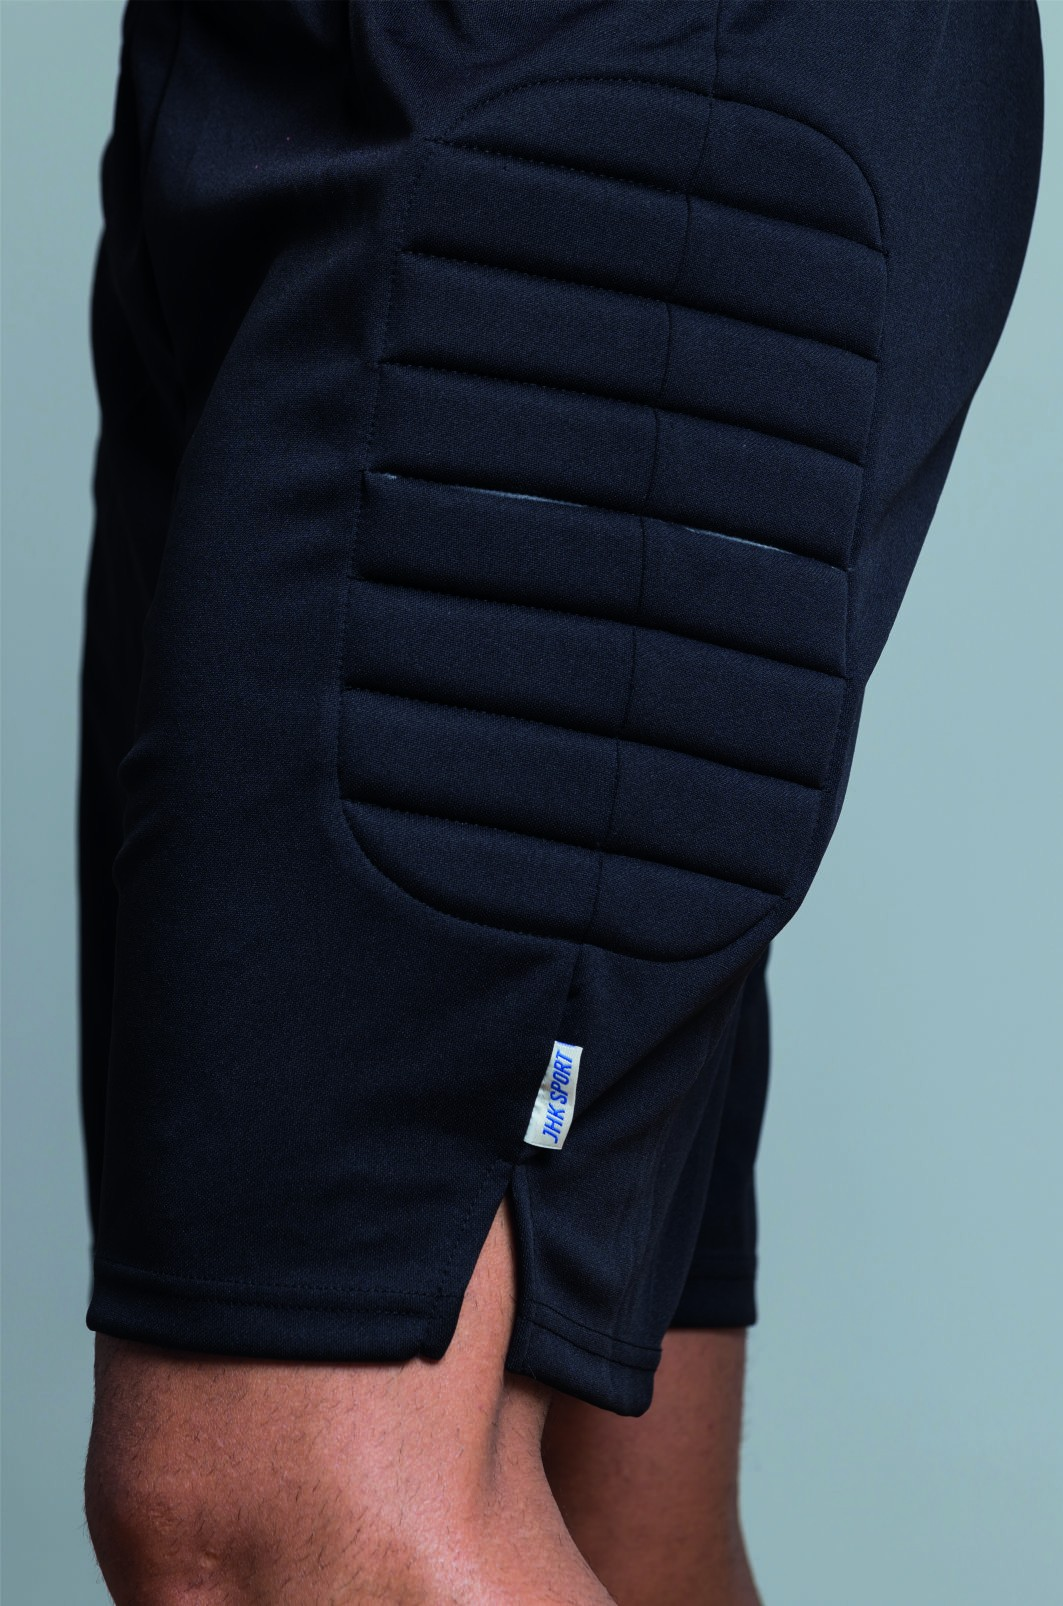 JHK STADIUM KID